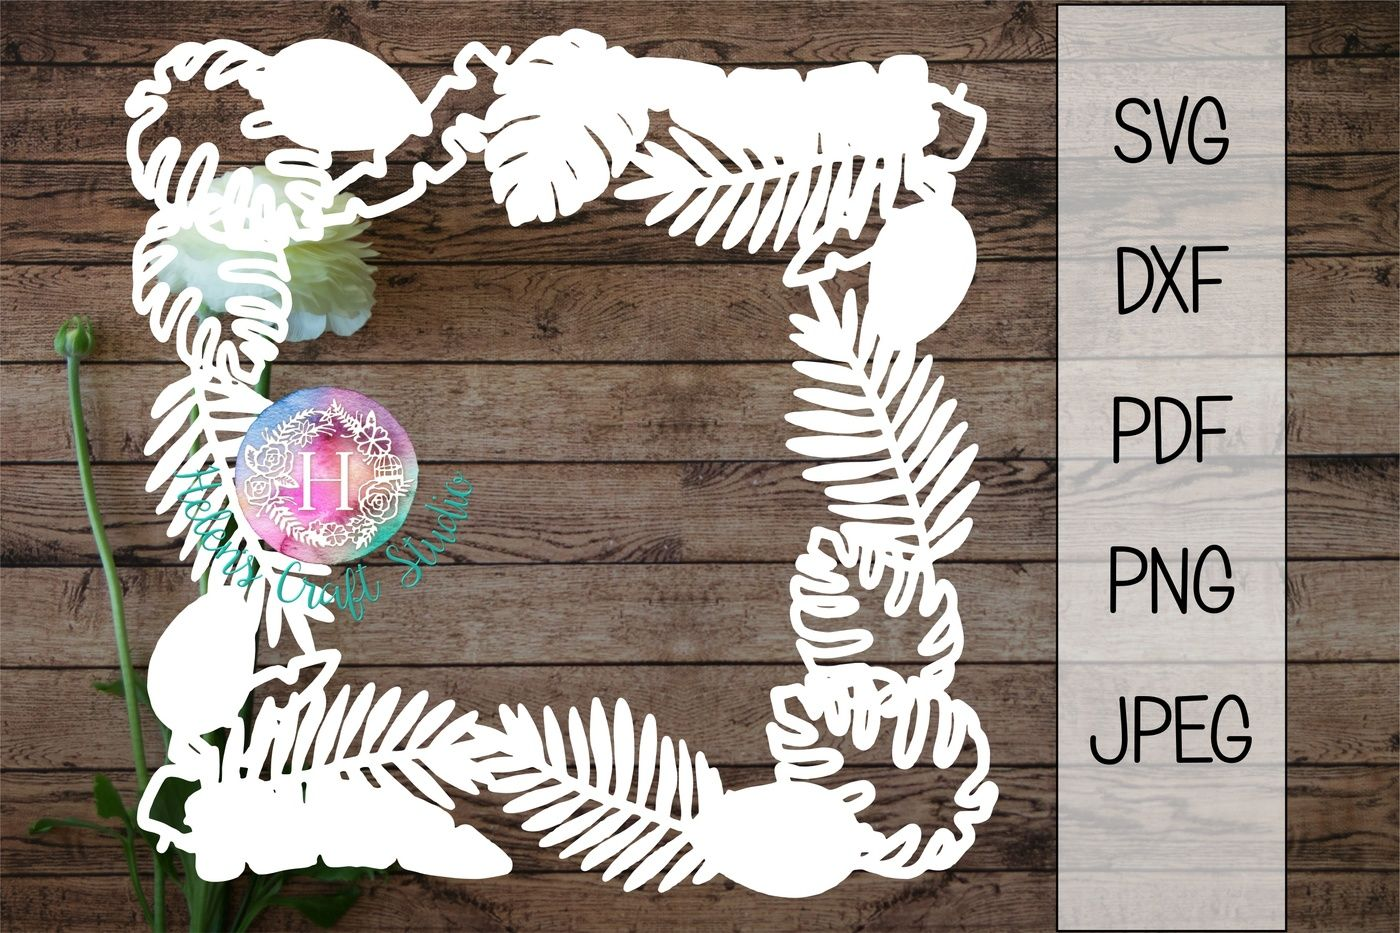 Tropical Leaves Frame Svg Dxf Png Pdf And Jpeg Cutting File By Helens Craft Studio Thehungryjpeg Com Download transparent tropical leaves png for free on pngkey.com. tropical leaves frame svg dxf png pdf